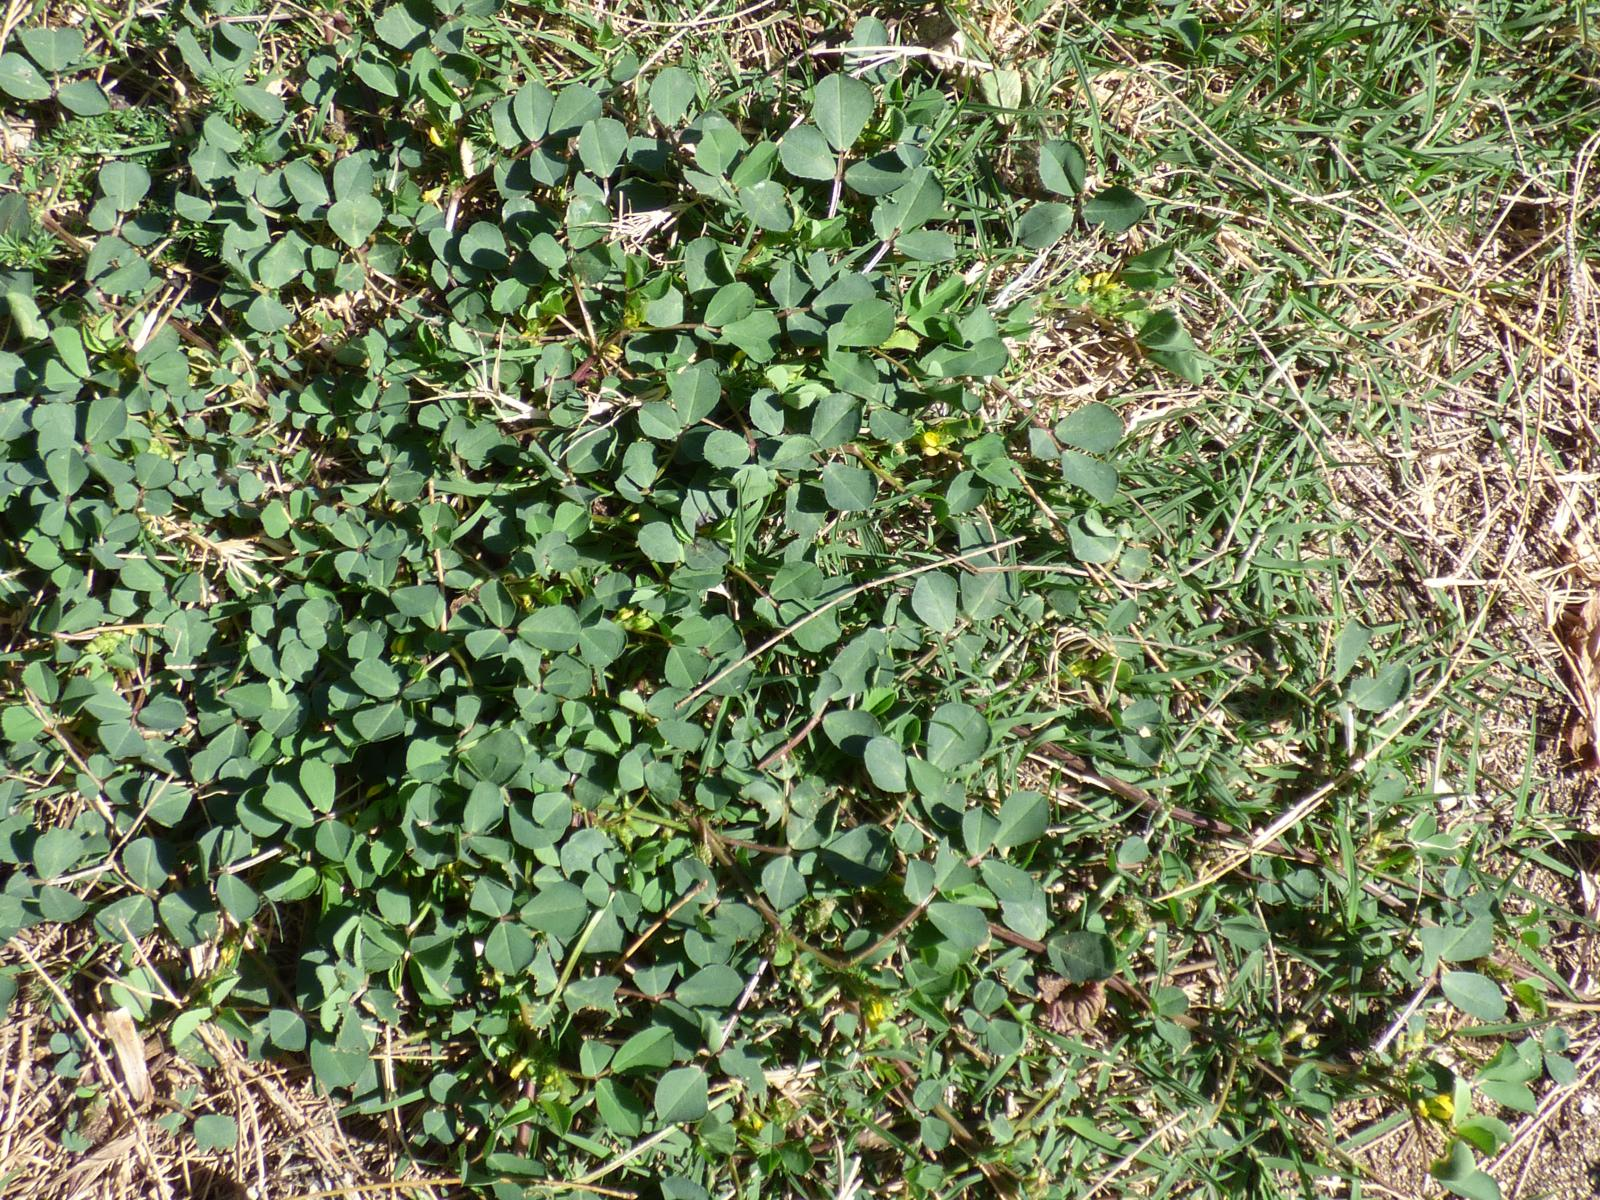 how to get rid of bur clover